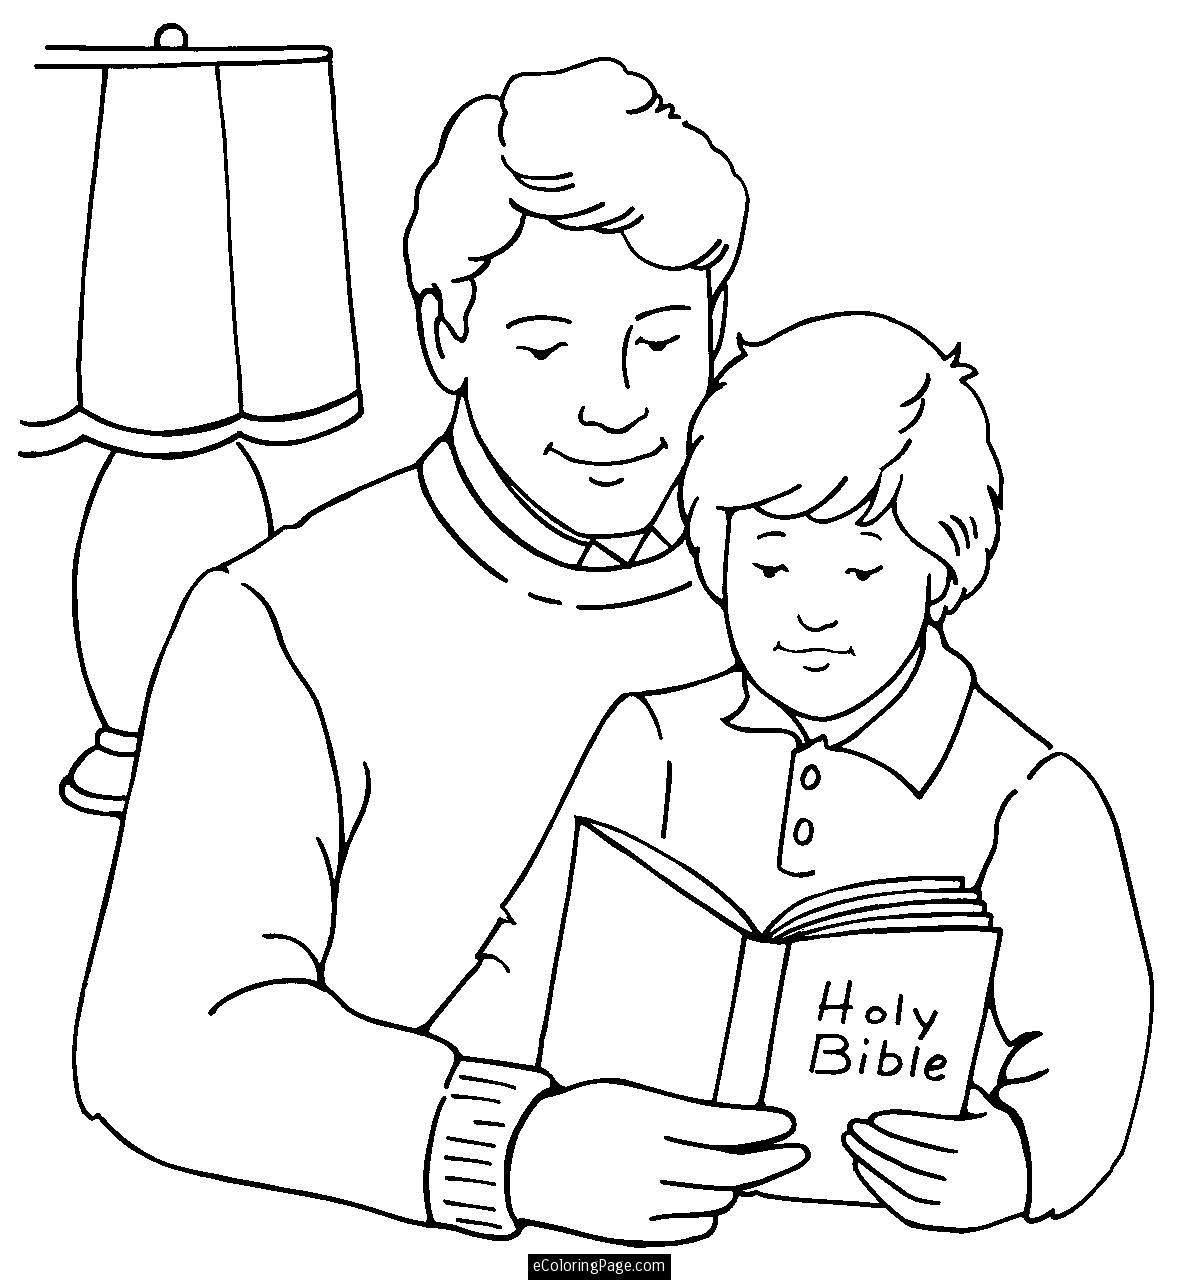 Father And Son Reading The Bible Coloring Page For Kids Printable